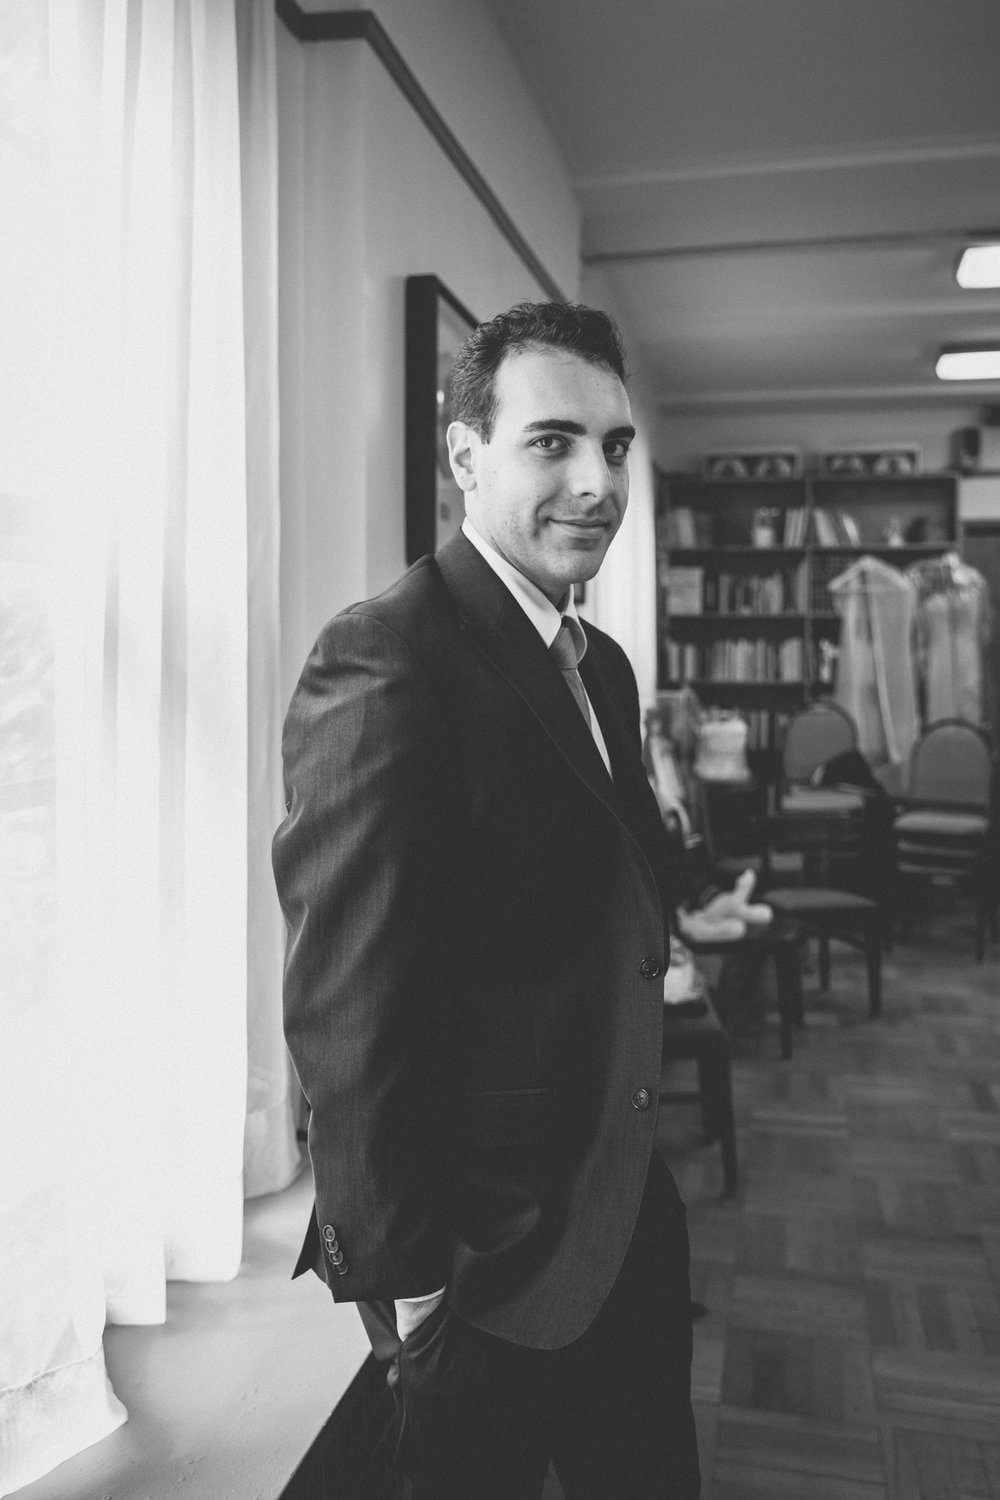 Groom waits in room inside church before the ceremony | Our Lady of Pompeii wedding | Manhattan wedding | Bronx Wedding | Cathy & Antonello's wedding | Amy Sims Photography